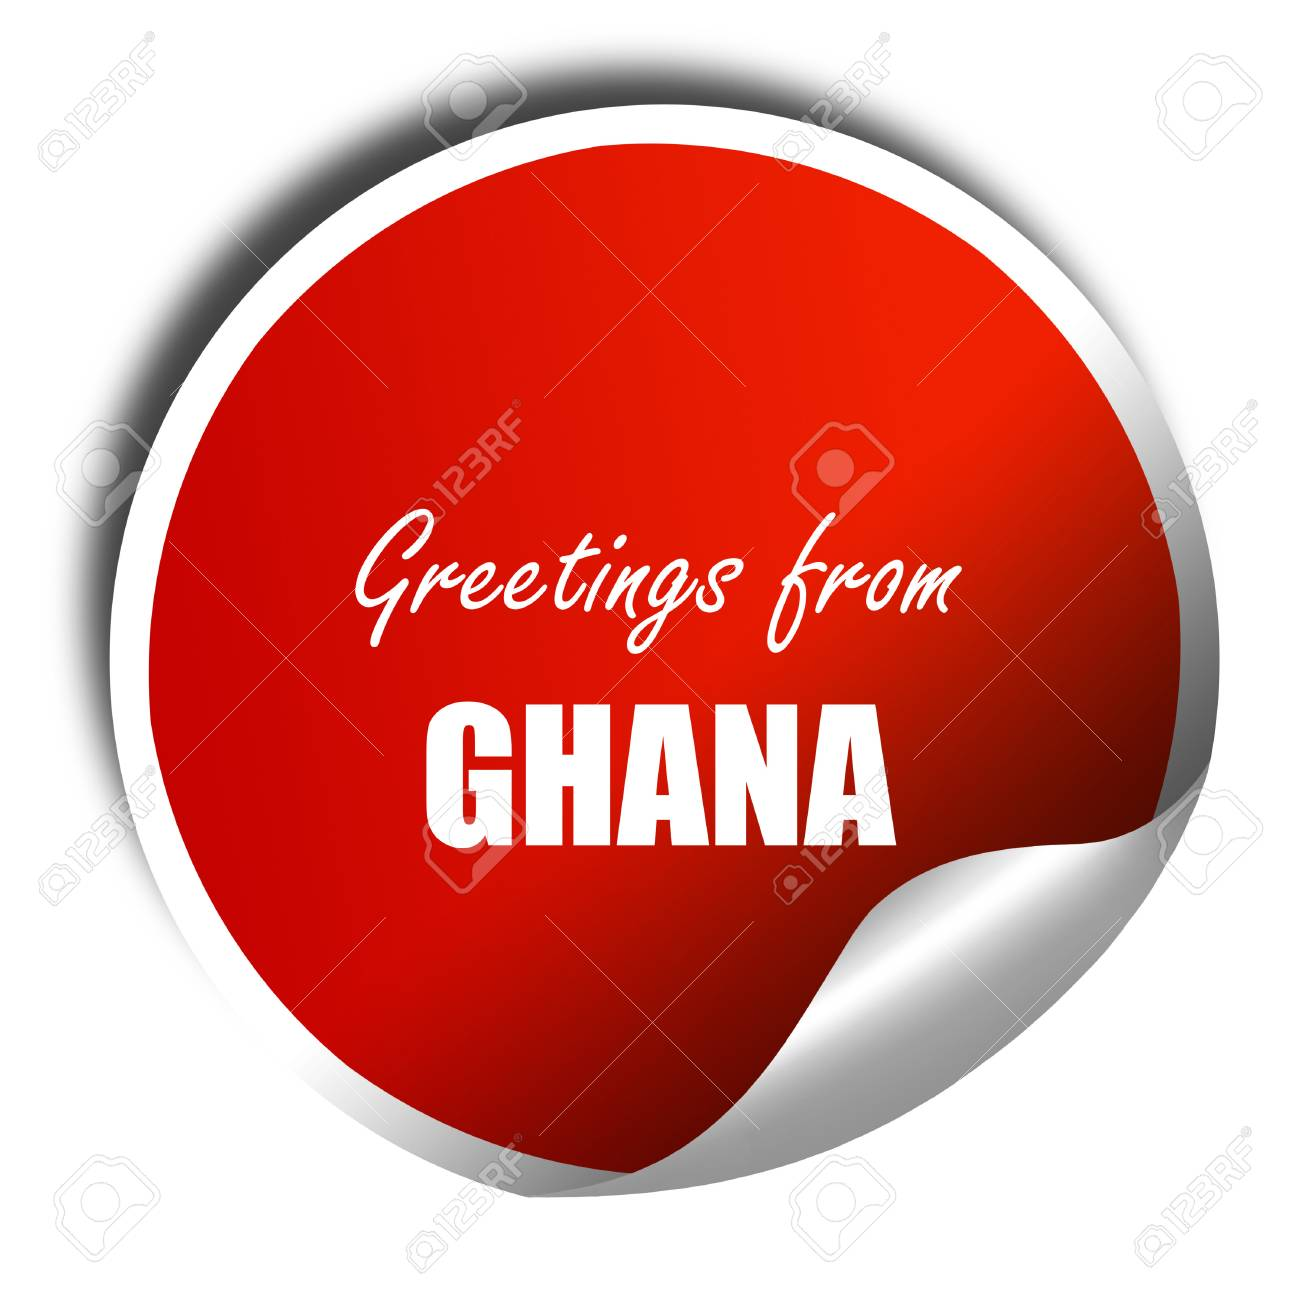 Greetings from ghana card with some soft highlights 3d rendering greetings from ghana card with some soft highlights 3d rendering red sticker with white m4hsunfo